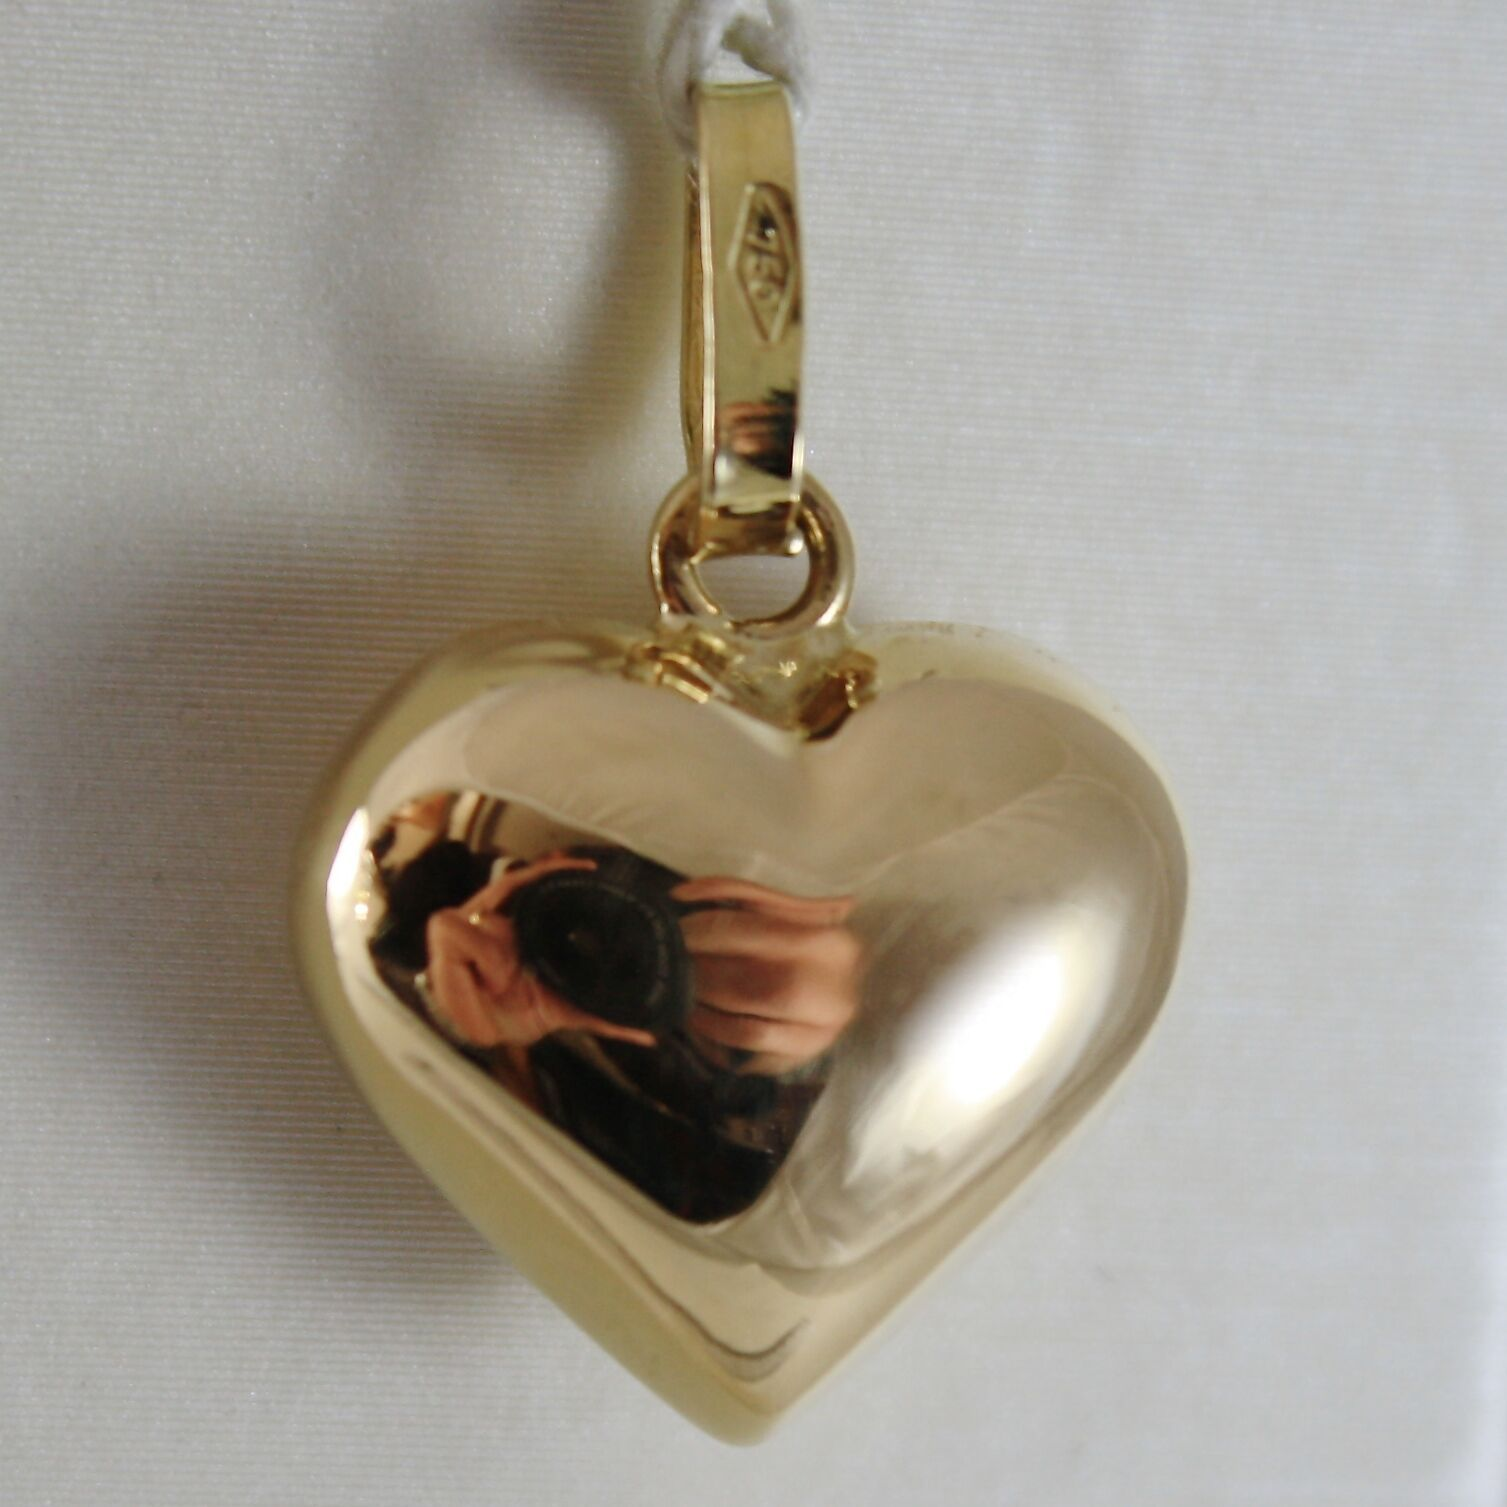 18K YELLOW GOLD ROUNDED MINI HEART CHARM PENDANT SHINY 0.79 INCHES MADE IN ITALY